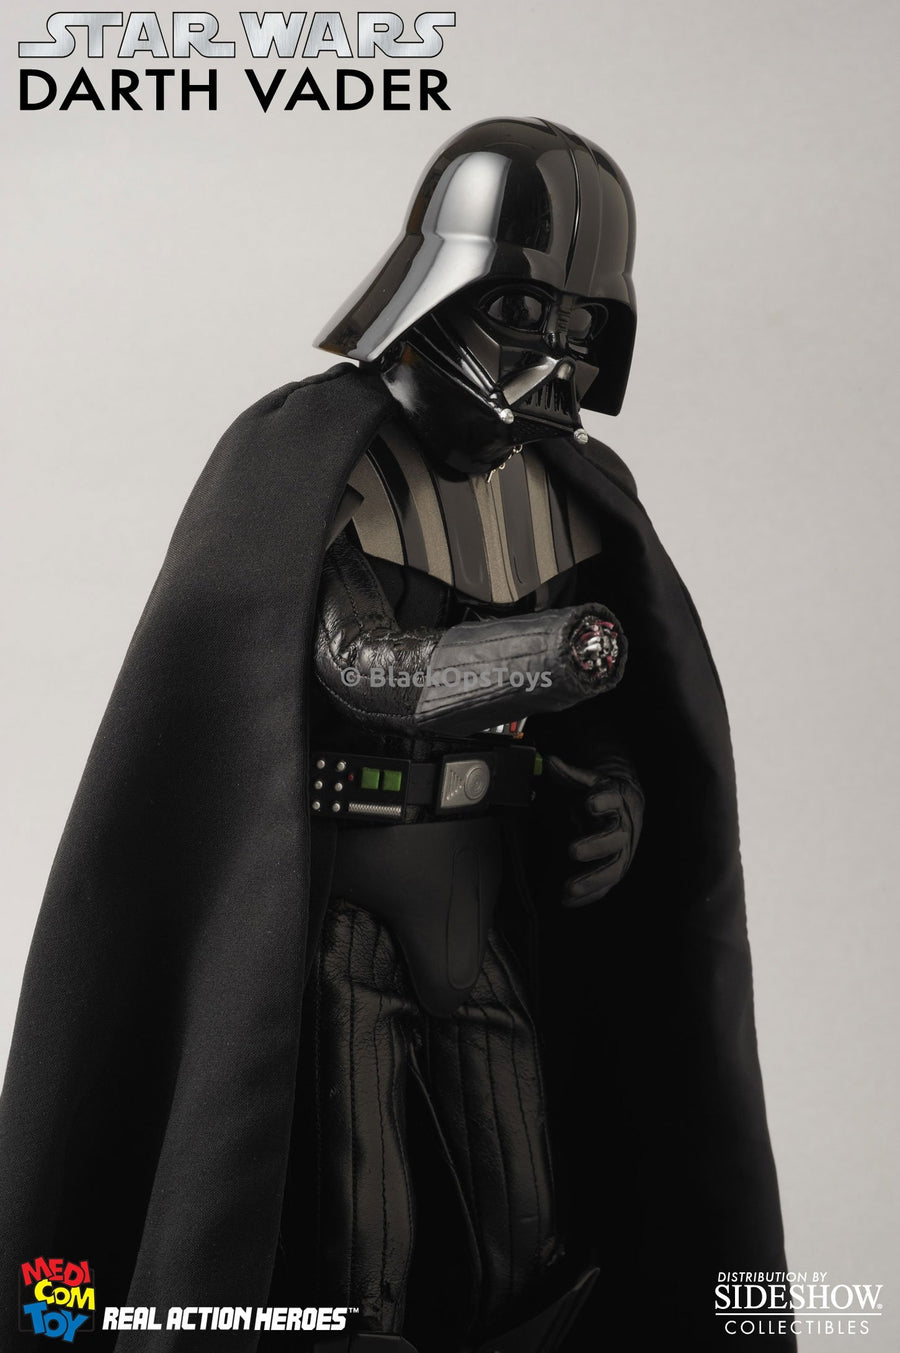 Medicom Star Wars Darth Vader Ver. 2.0 Upper Body Armor